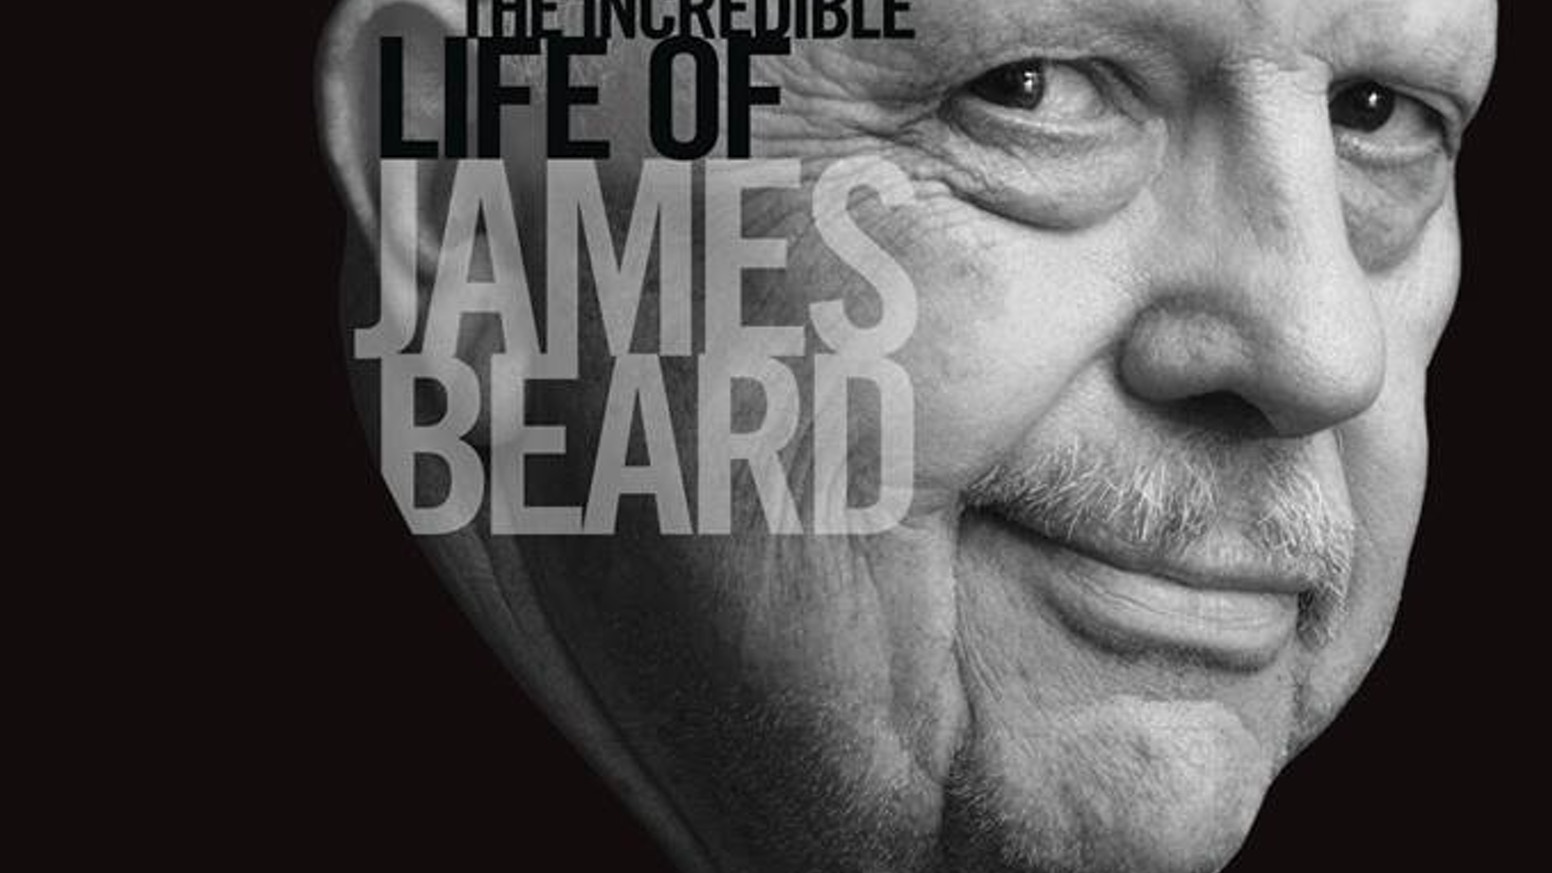 America's First Foodie: The Incredible Life of James Beard ...